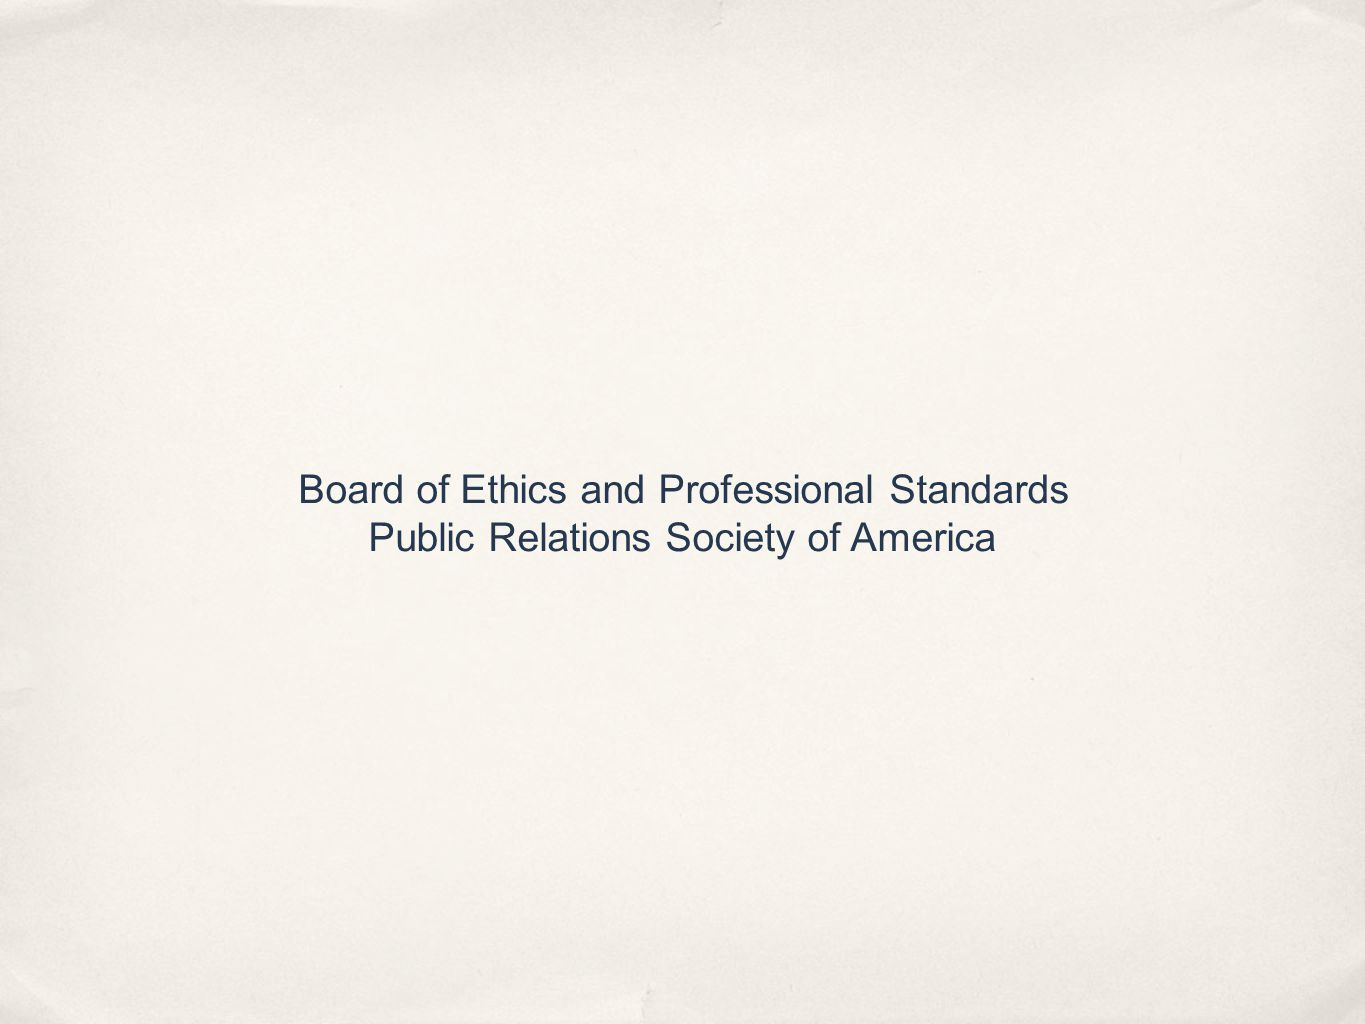 Board of Ethics and Professional Standards Public Relations Society of America